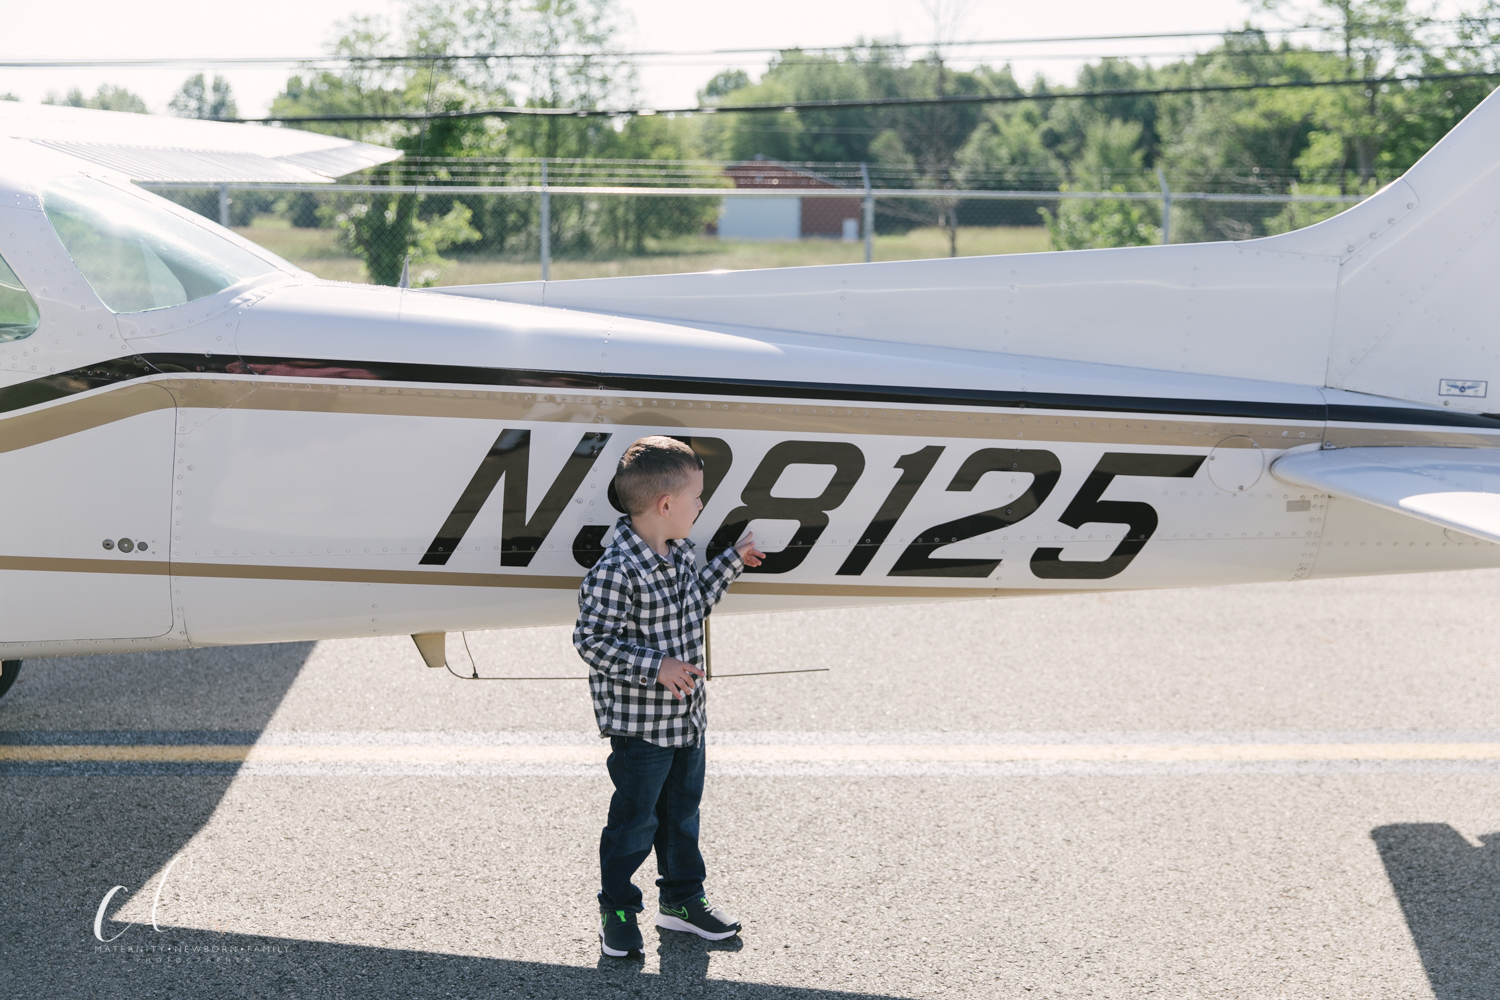 Aviation_Themed_Fourth_Birthday_at_Youngstown_Airport_Hanger_Vienna_OH_by_Child_and_Family_Photographer_Christie_Leigh_Photo-15.JPG